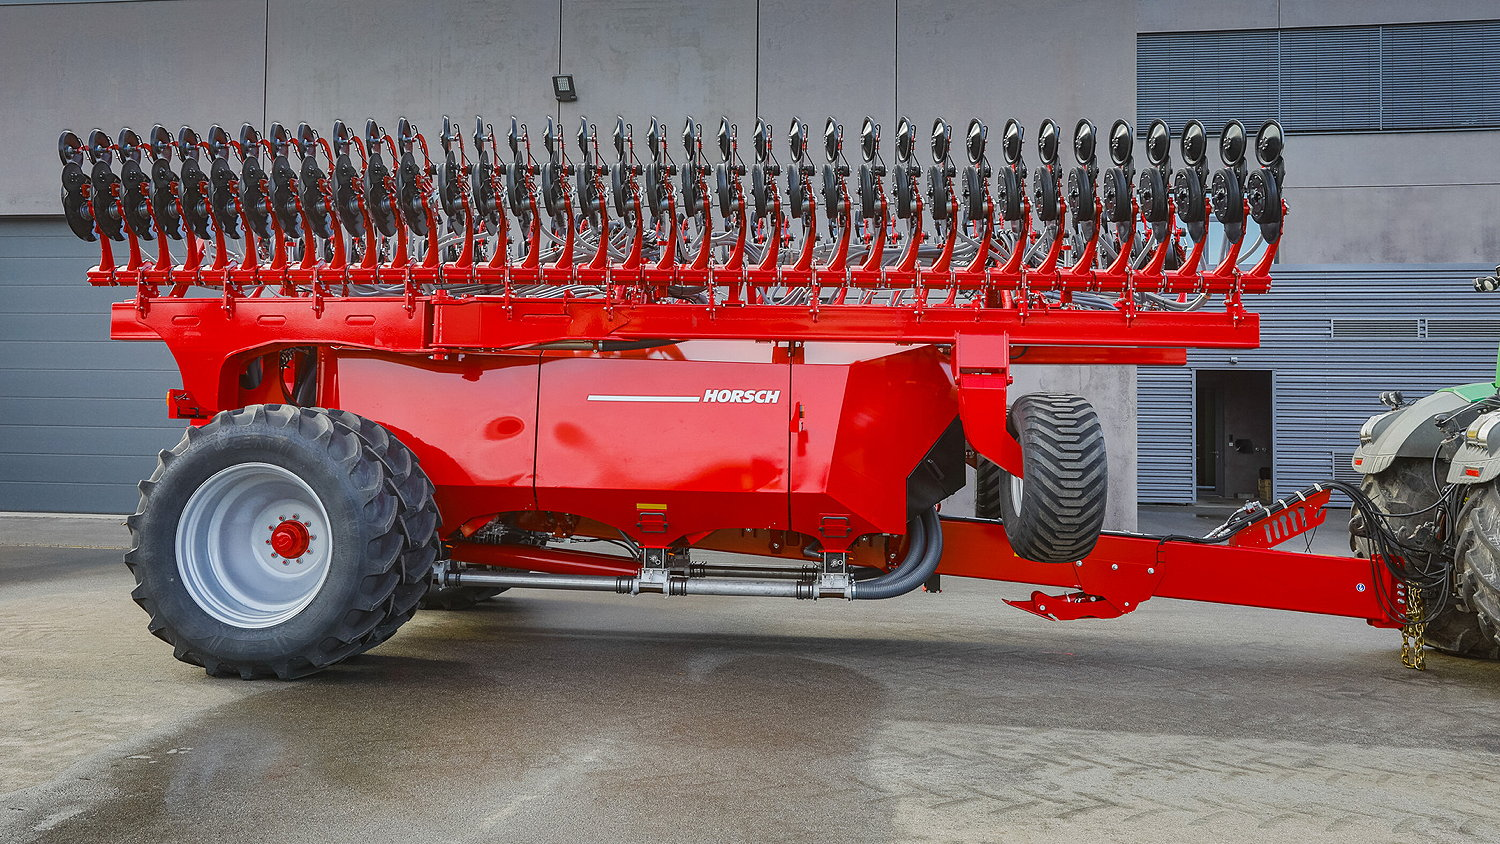 The new Horsch Avatar 18 M has an 18m working width and a three separate tanks totalling 14,600 litres for seed and/or feriliser